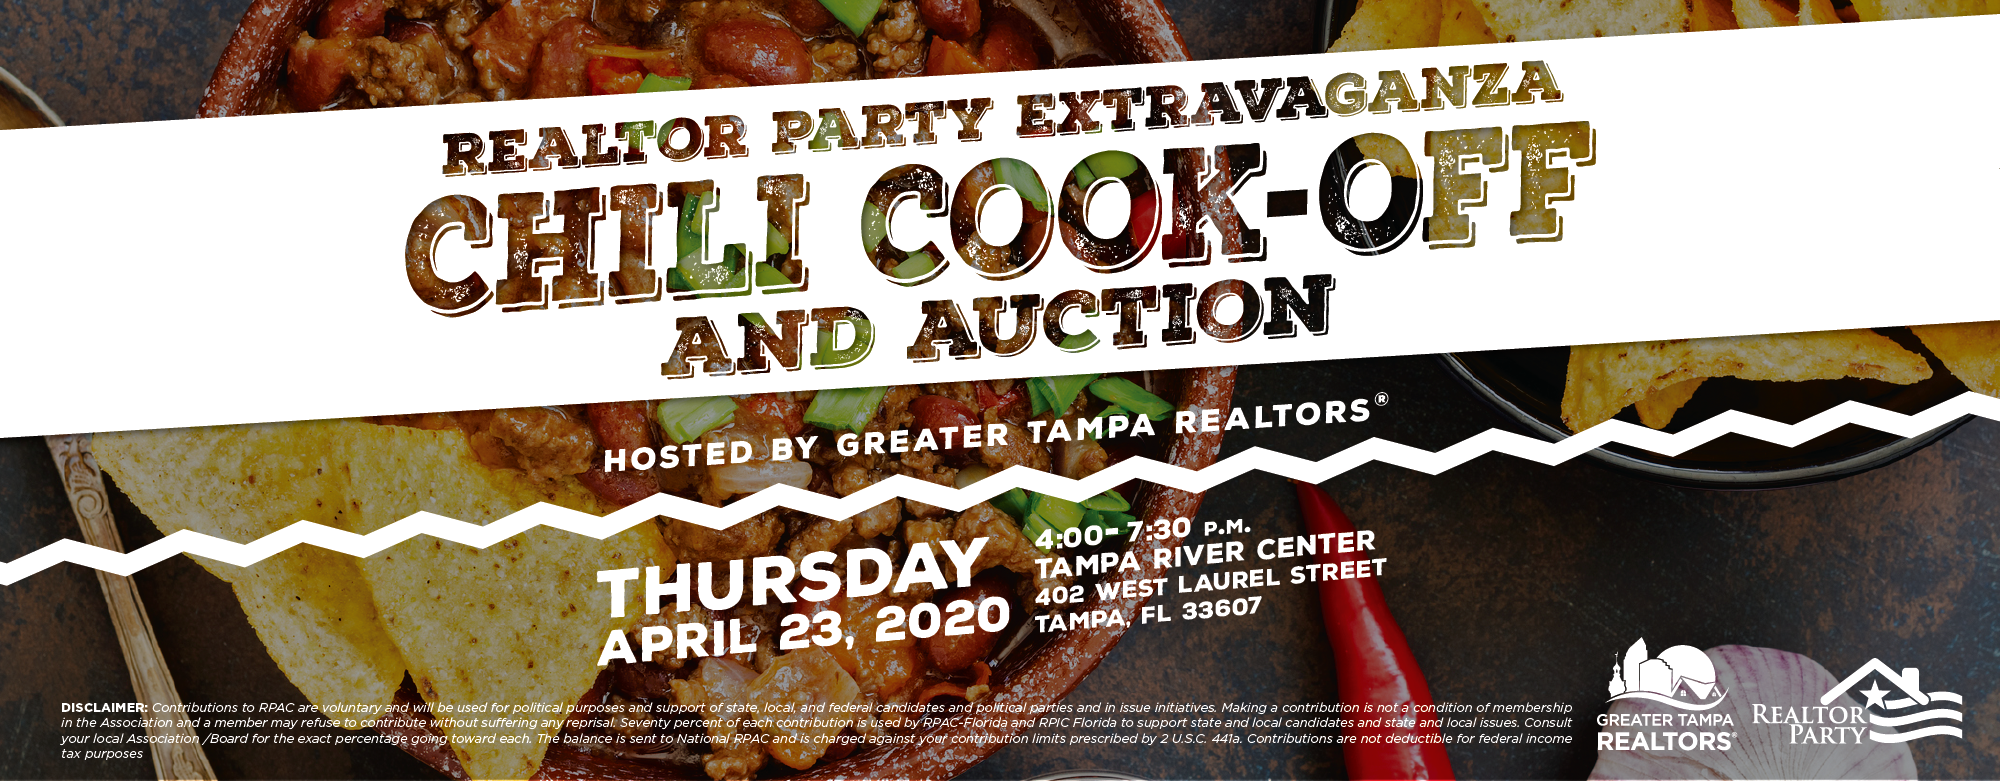 2020 Chili Cook Off Promo Flyer WEB-06-01